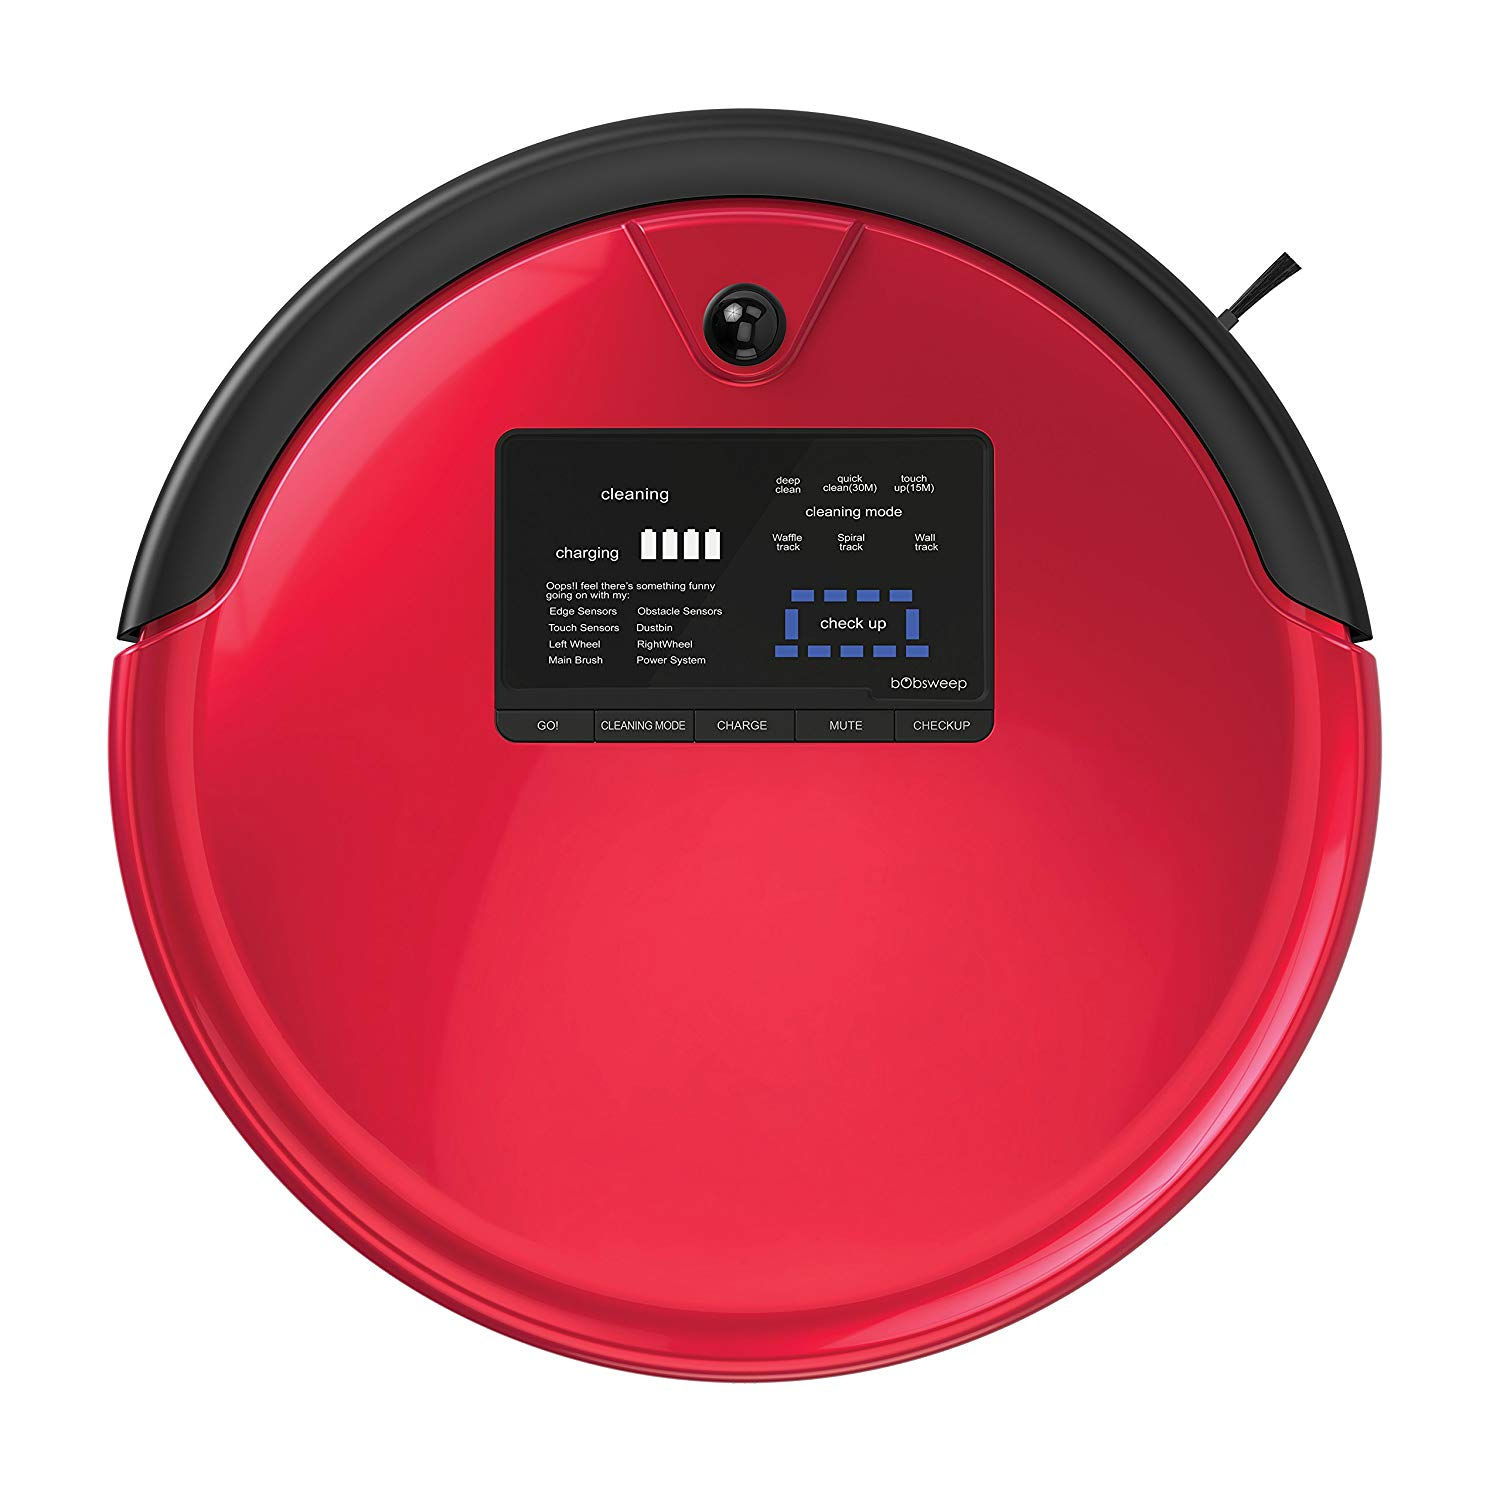 bObsweep PetHair Plus Robotic Vacuum Cleaner